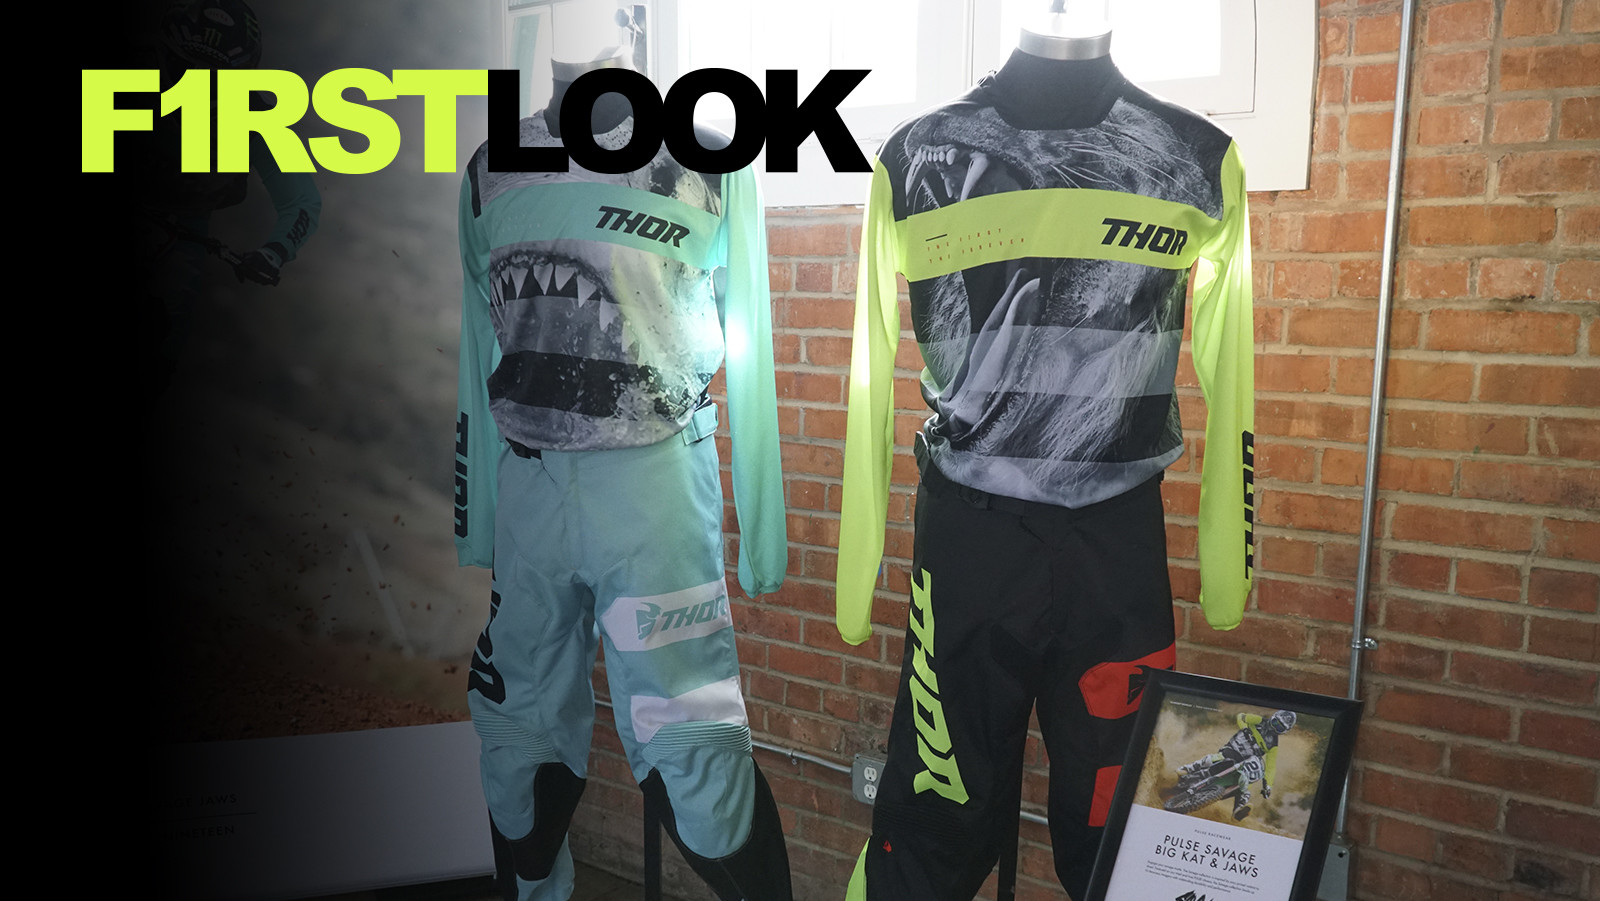 FIRST LOOK: 2019 Thor Gear Launch